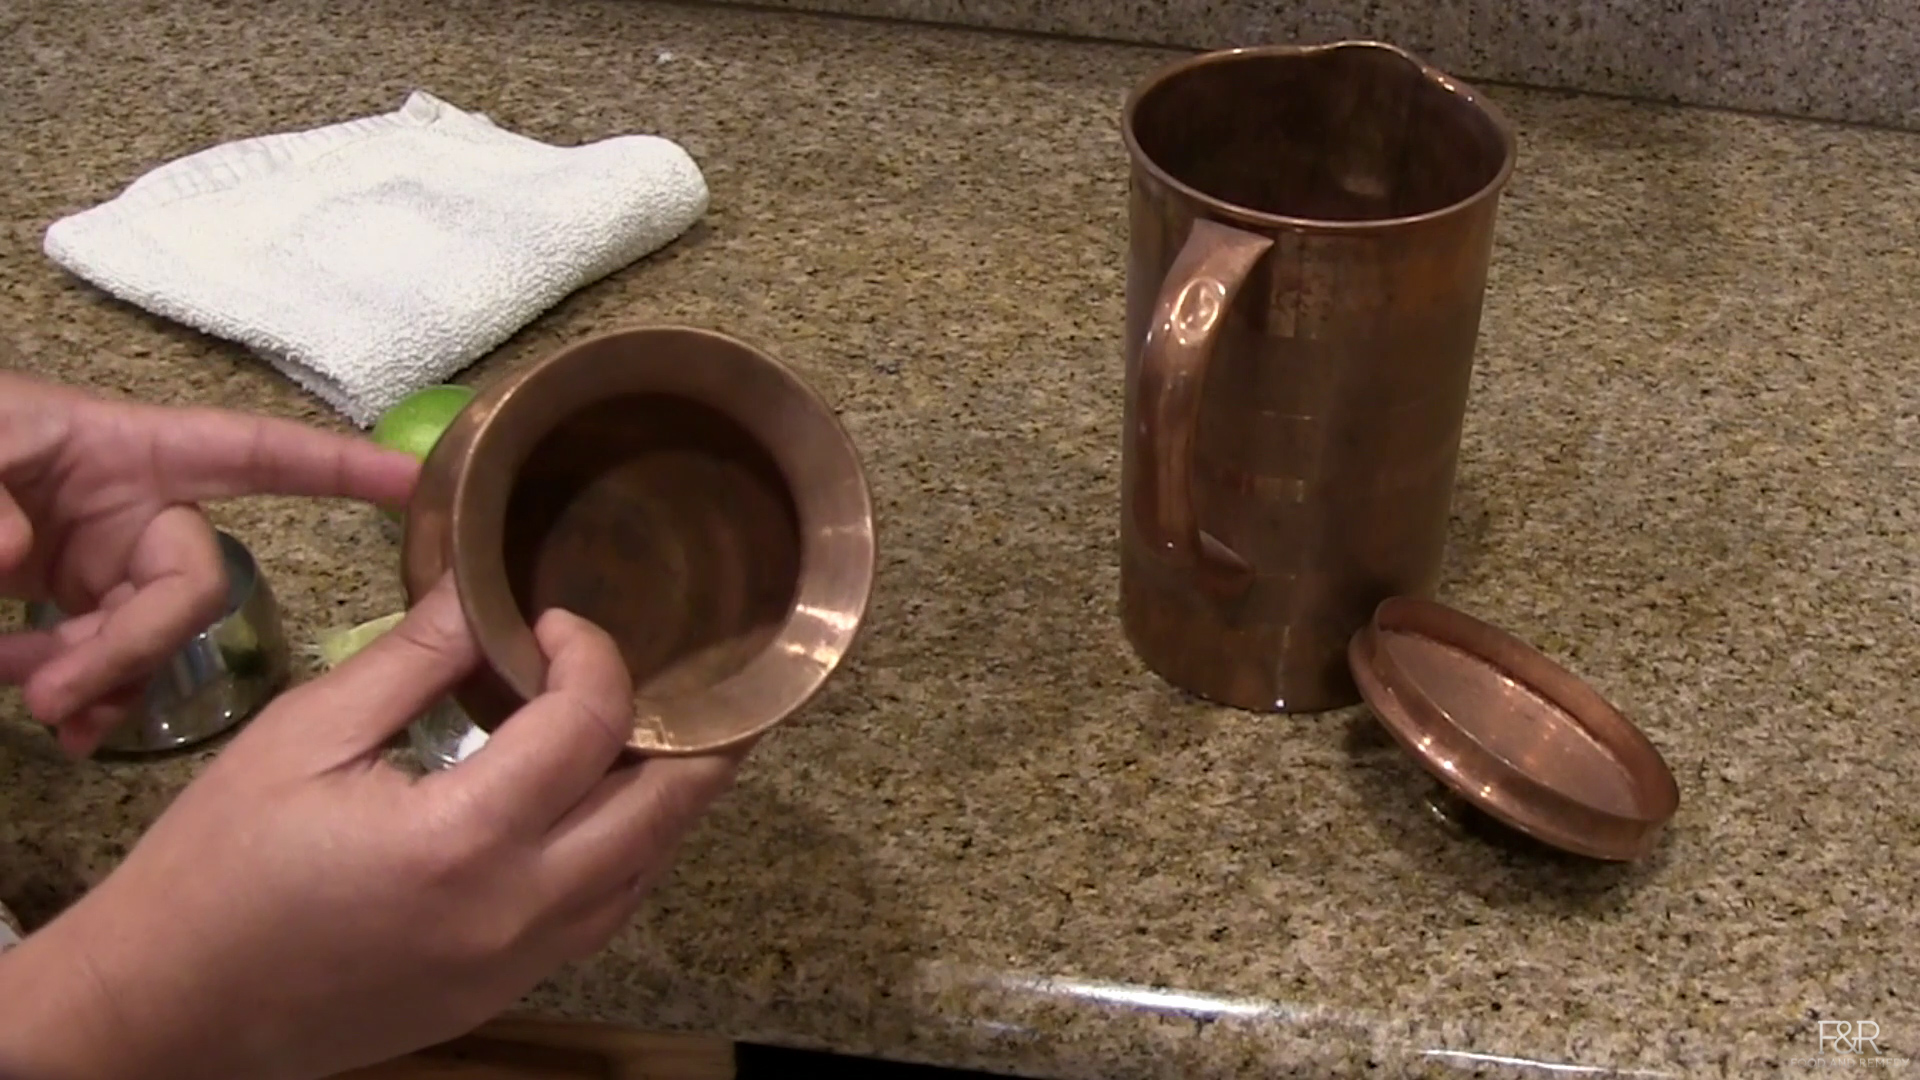 Simple ways to clean the vessels at home